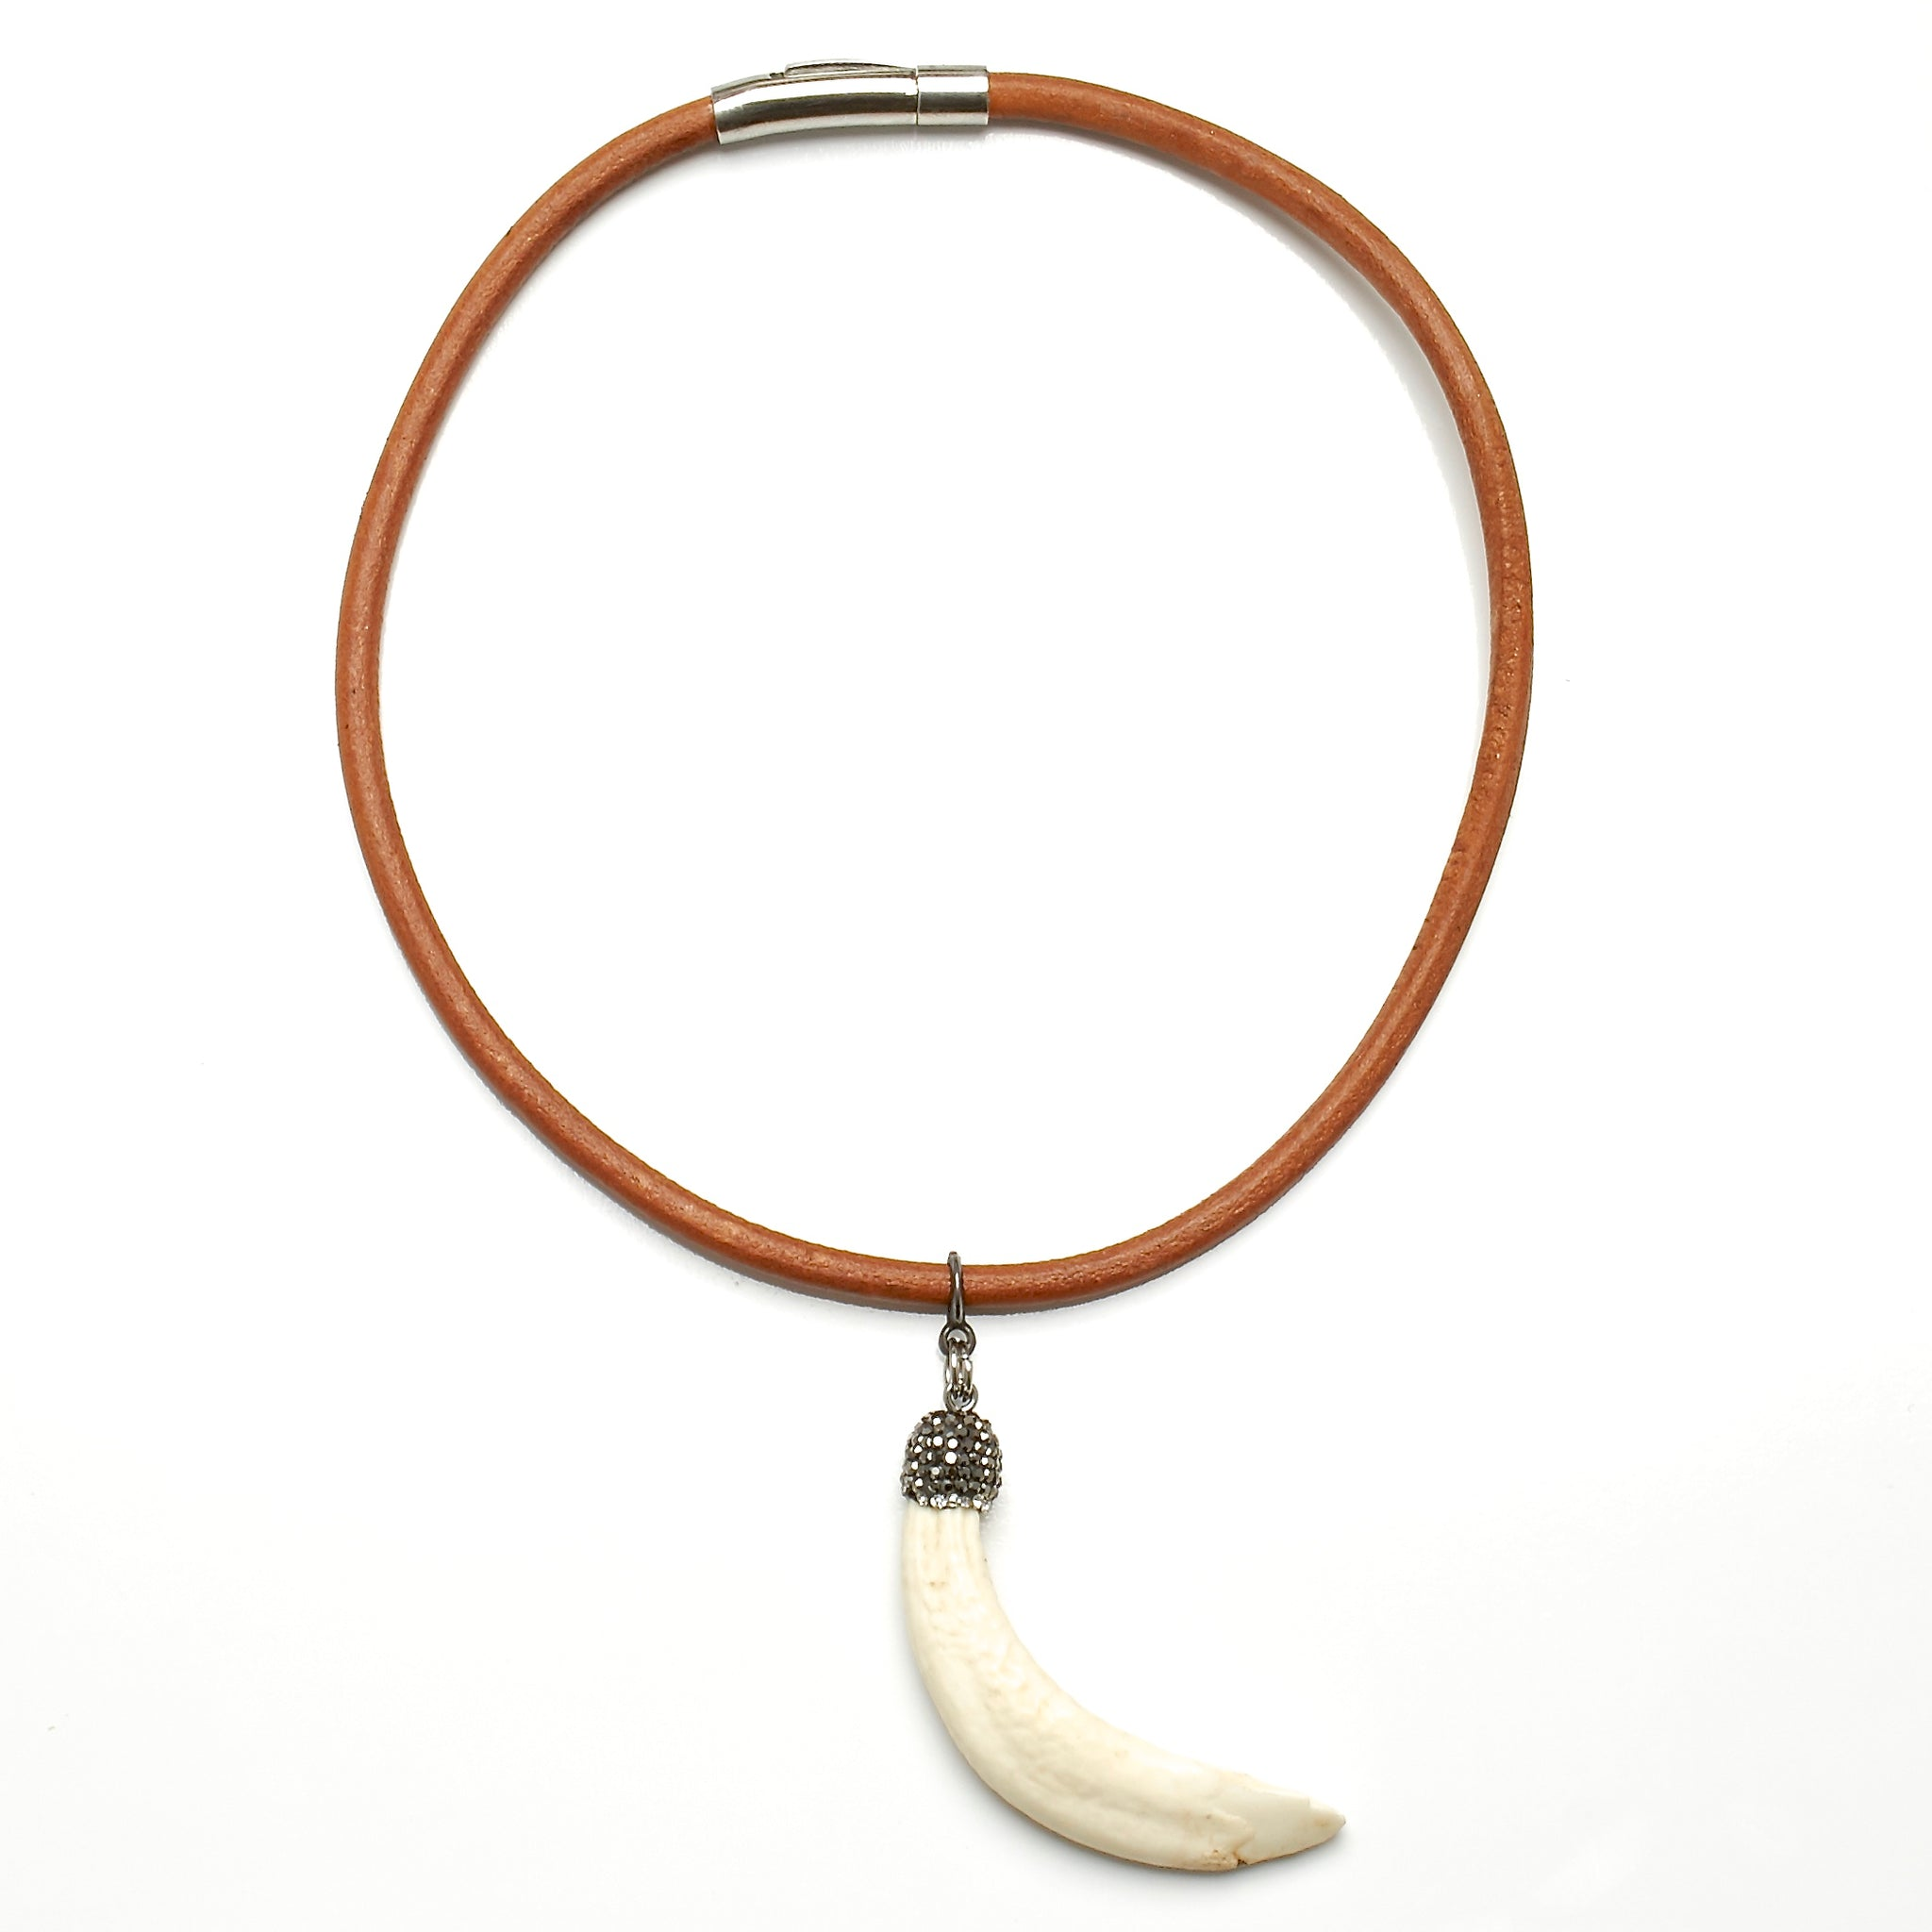 5 MM ROUND LEATHER NECKLACE WITH WILD BOAR'S TOOTH PENDANT AND RHINESTONES. by nyet jewelry.